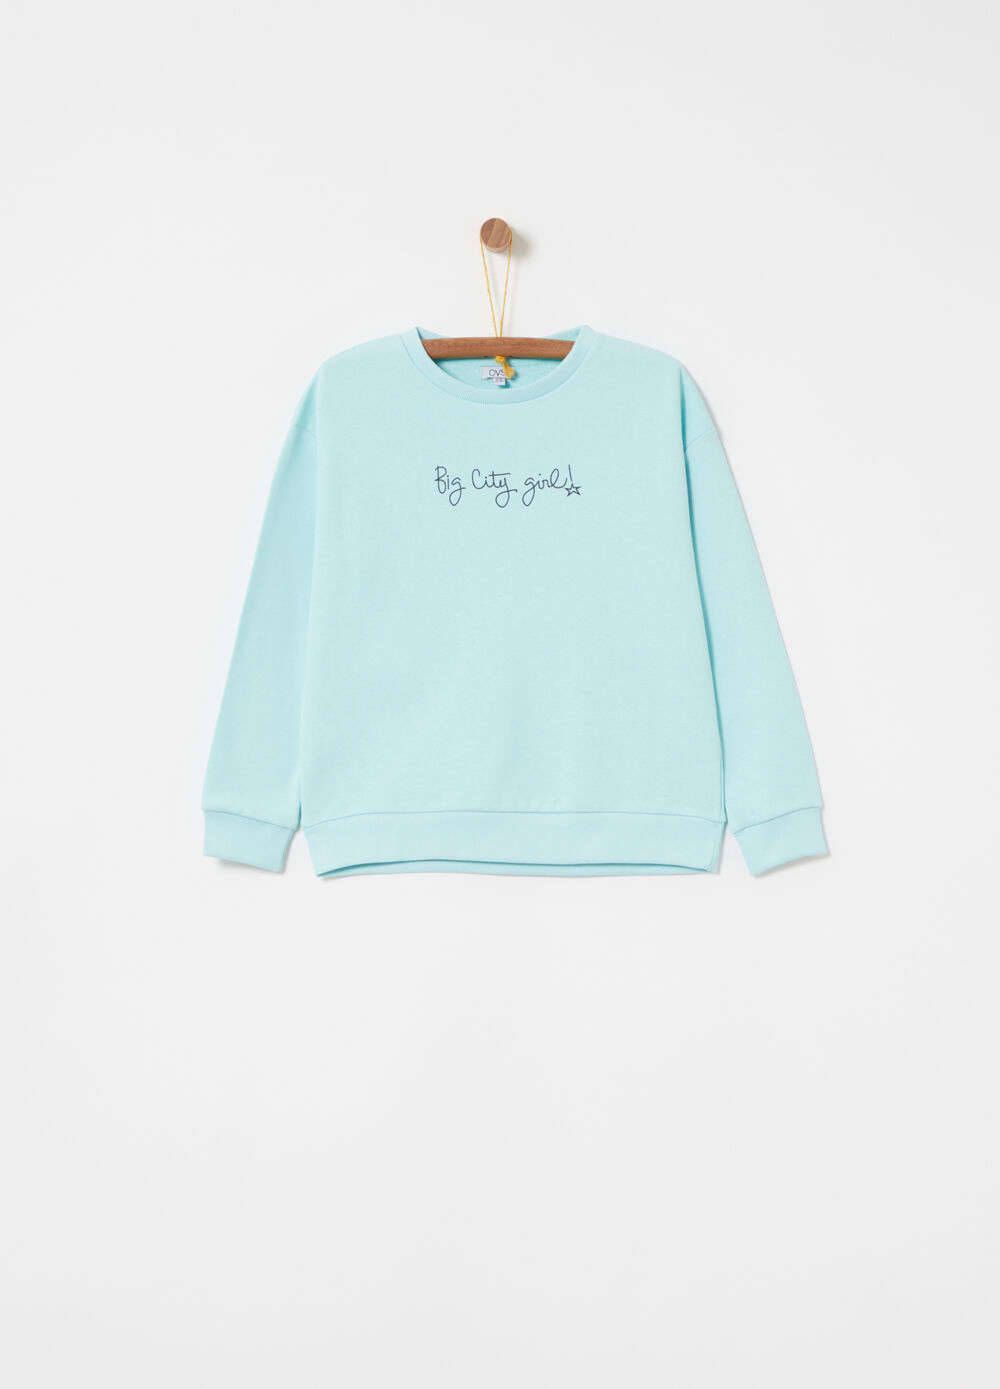 French terry sweatshirt with crew neck and lettering